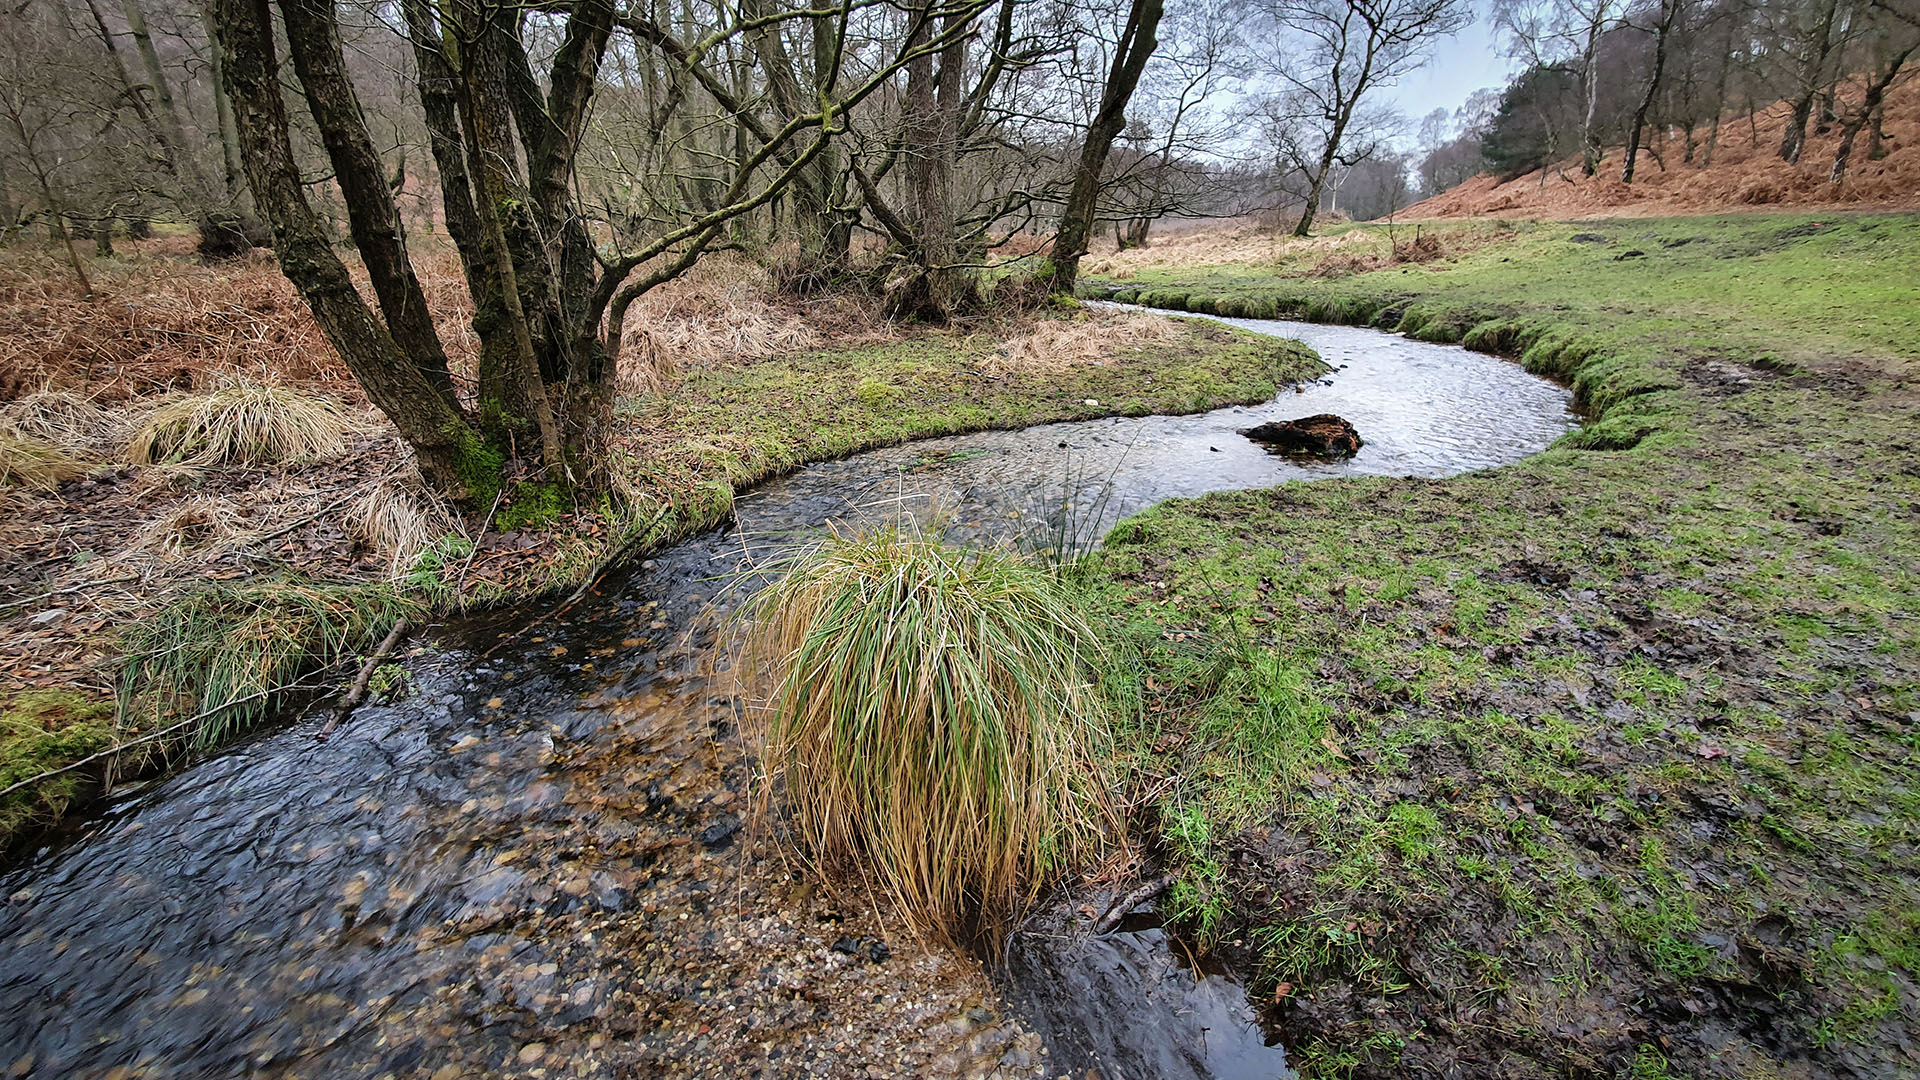 A meandering section of the pretty Sher Brook near Devil's Dumble